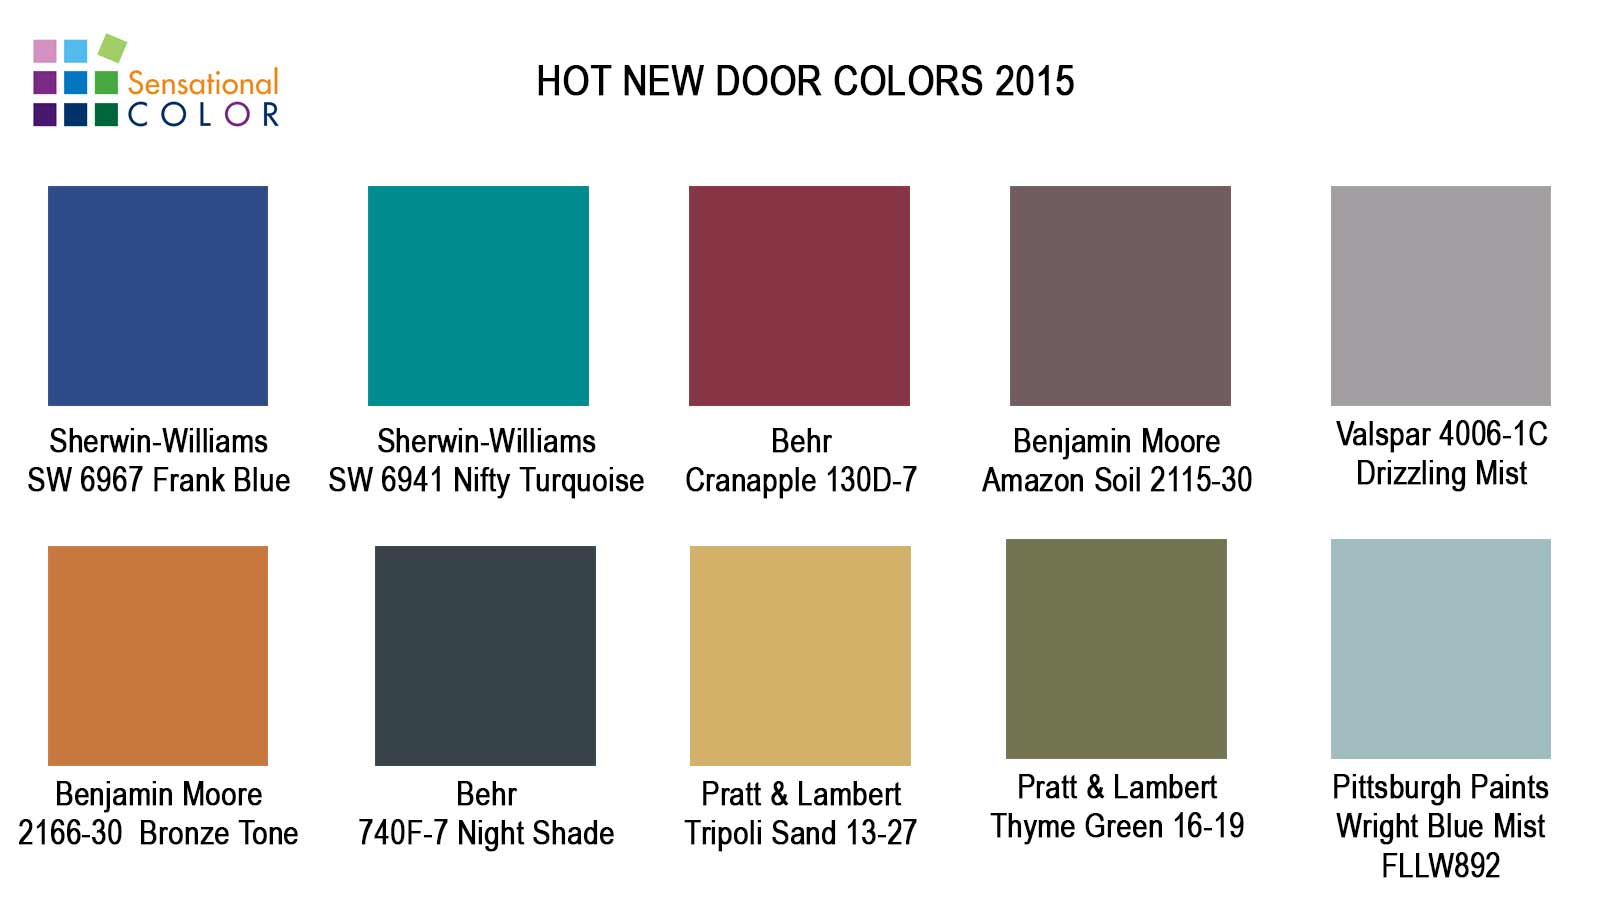 Best Door Colors hot new door colors for 2015